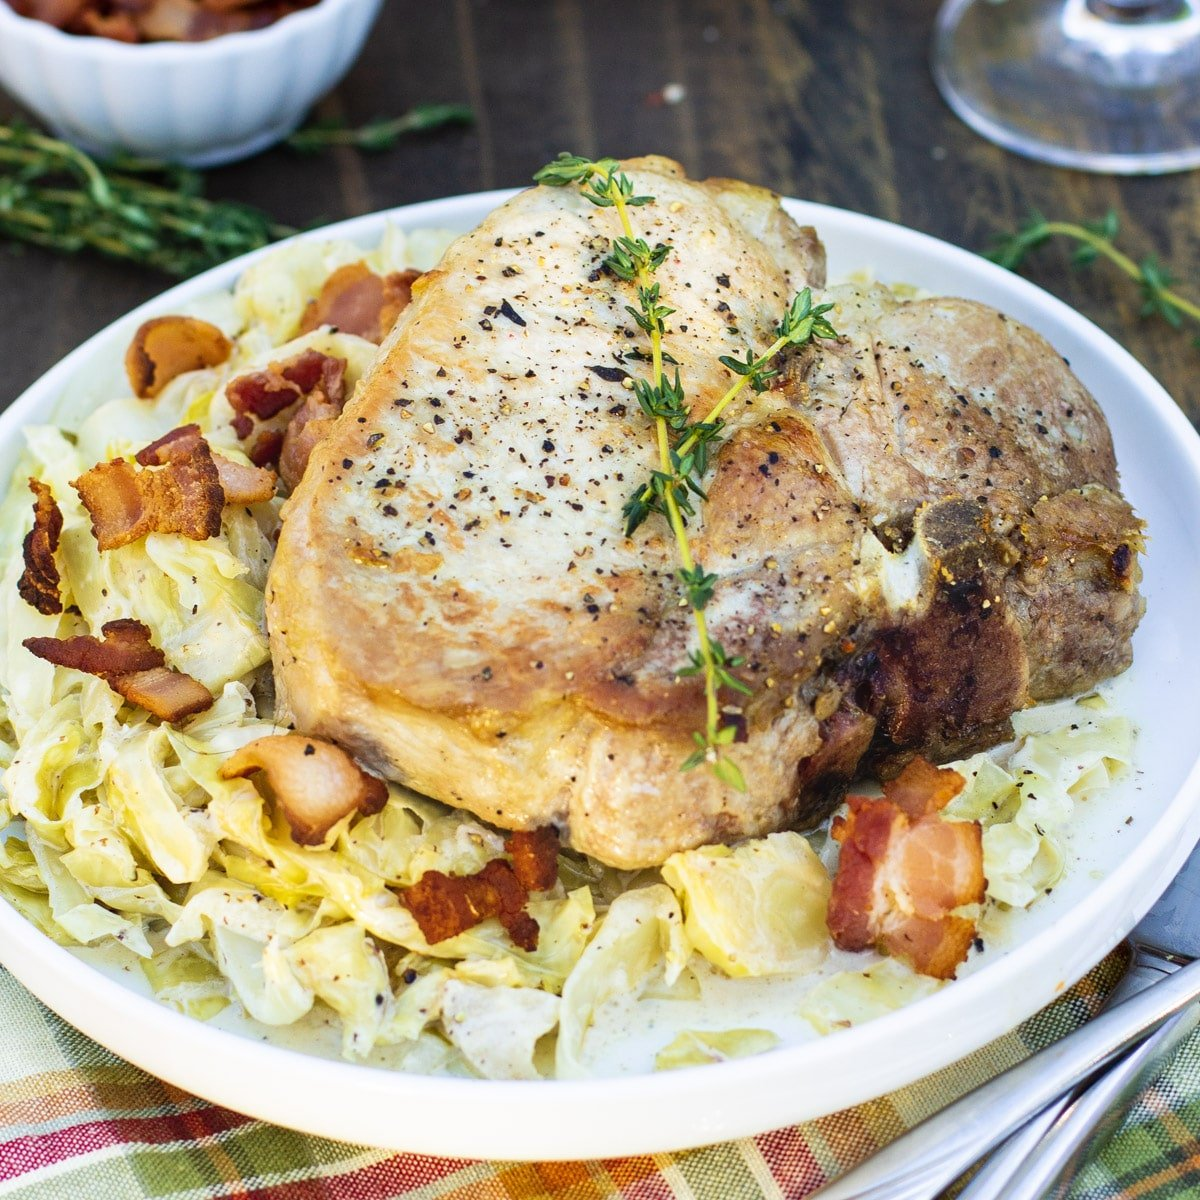 Pork Chops and Creamy Cabbage on a plate.